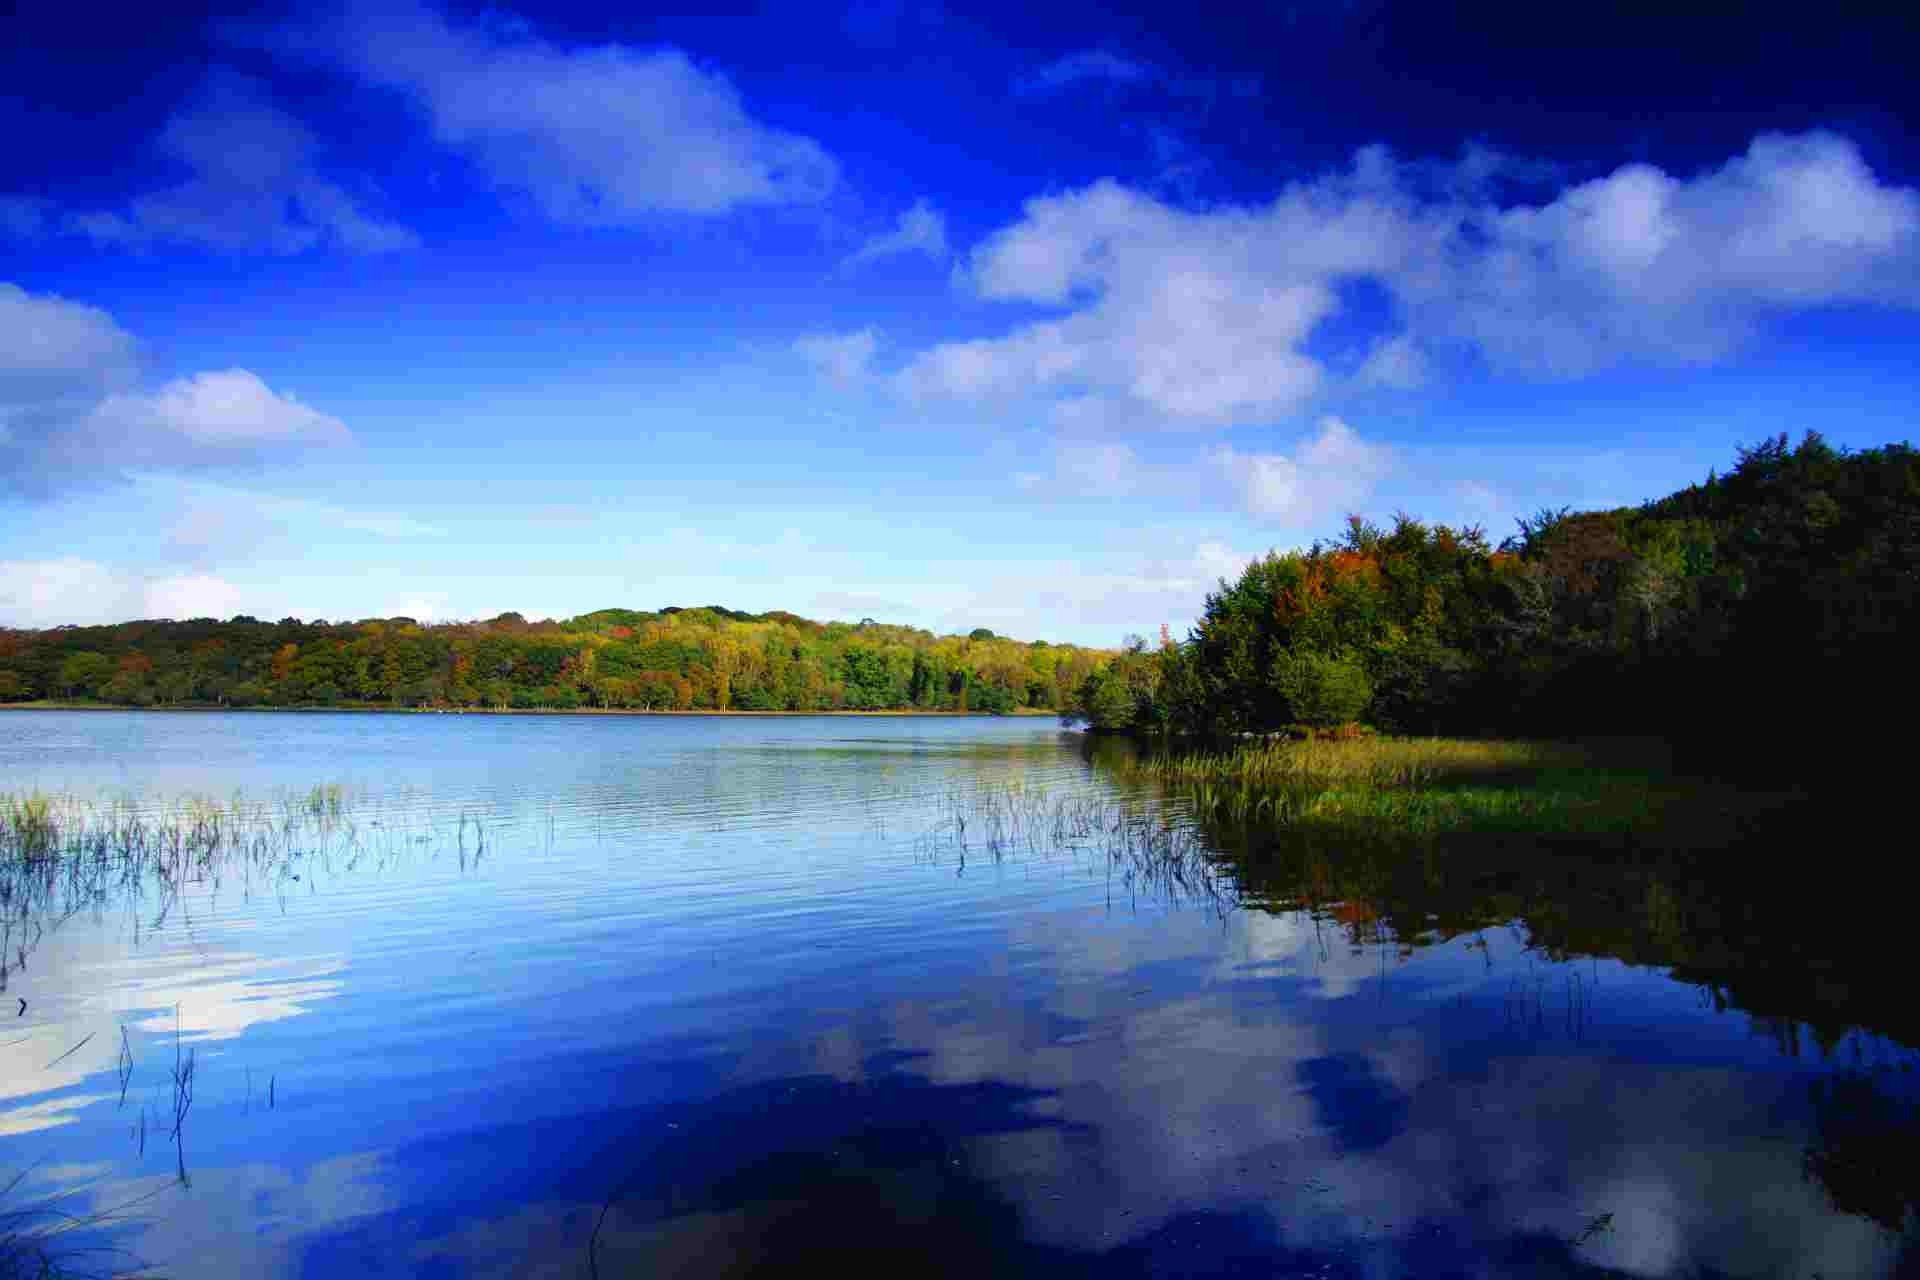 First Phase Of Lough Erne Heritage Project Begins